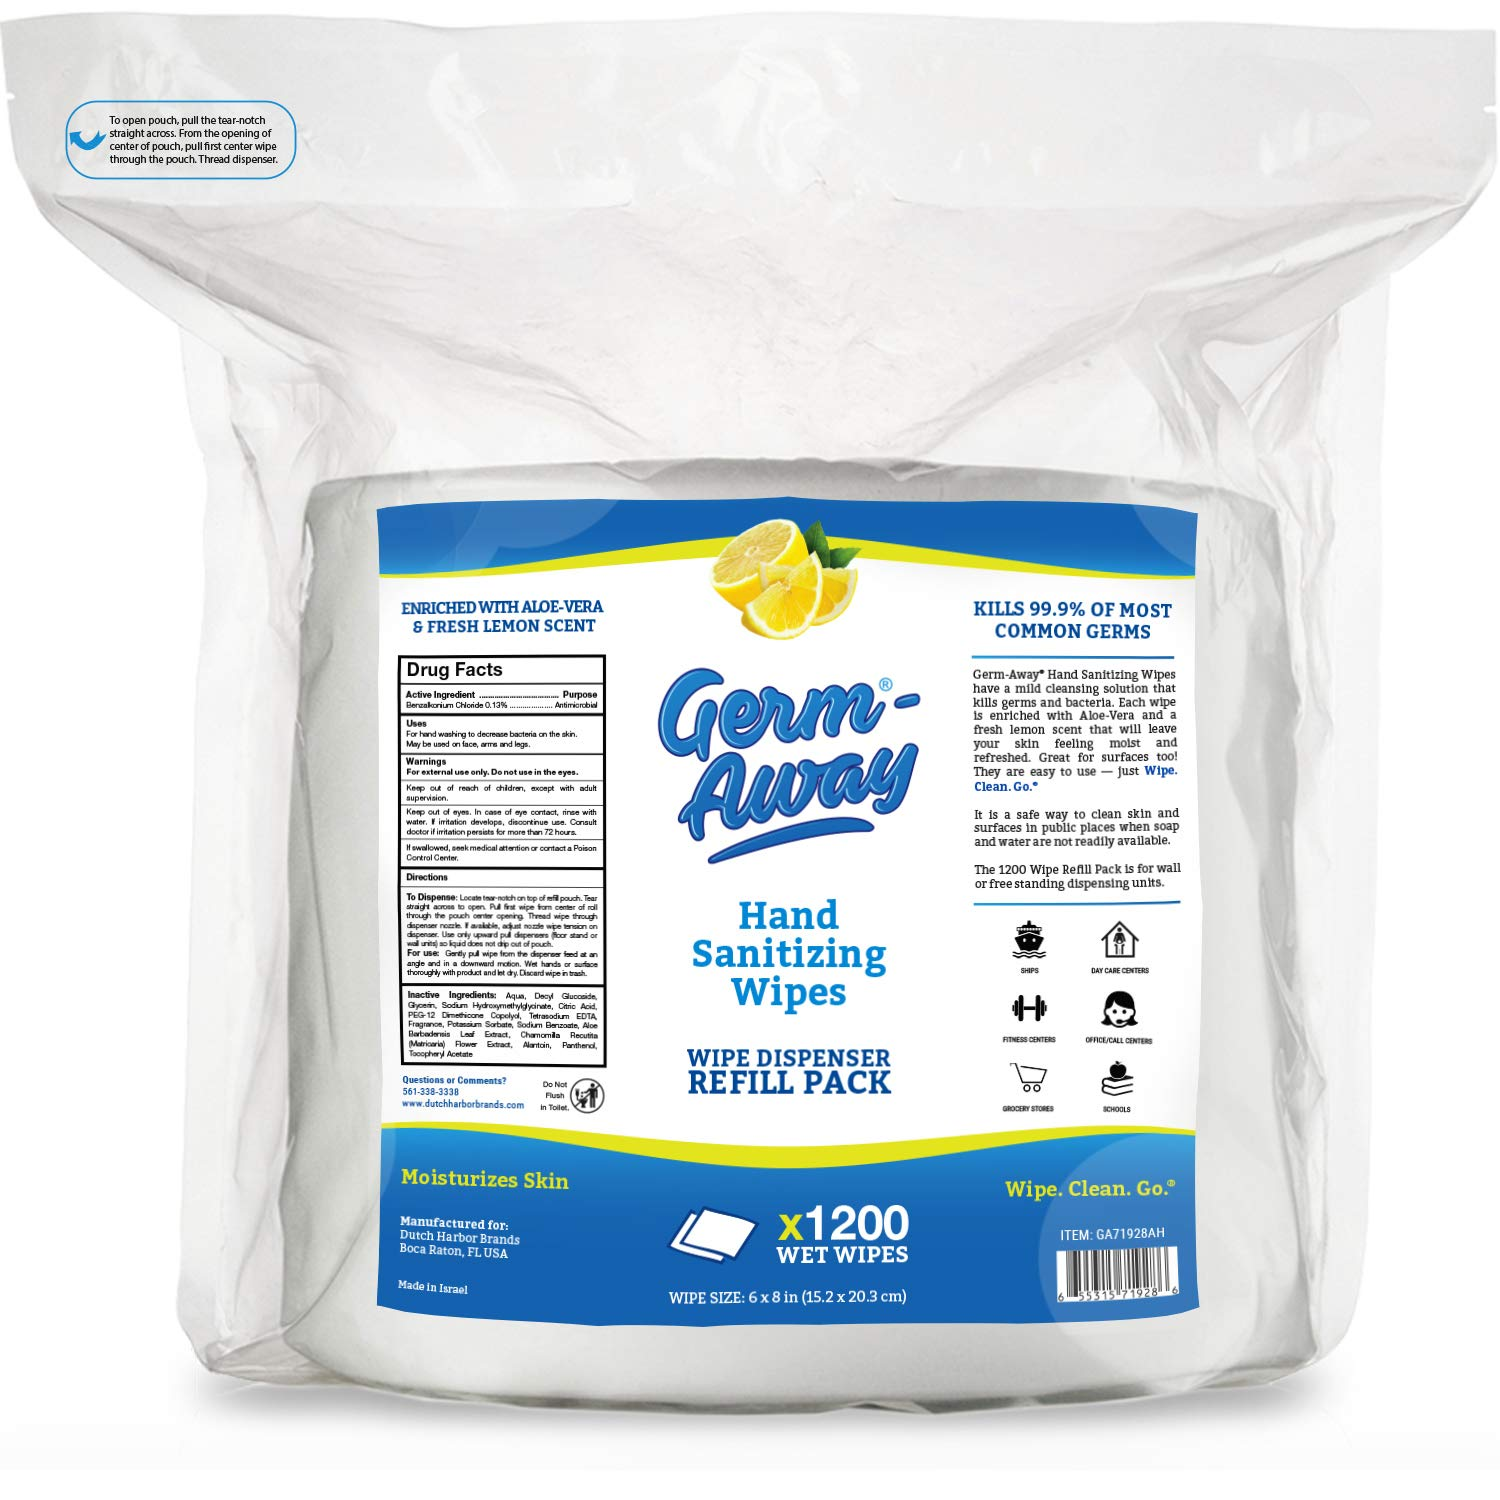 Germ-Away Antibacterial Hand Wipes, 1200 CT Refill Bag, Moisturizing & Lemon Scent, Refills are Compatible with/Replacement for Purell Dispensers, Model 9019-01 & Wipex Dispensers